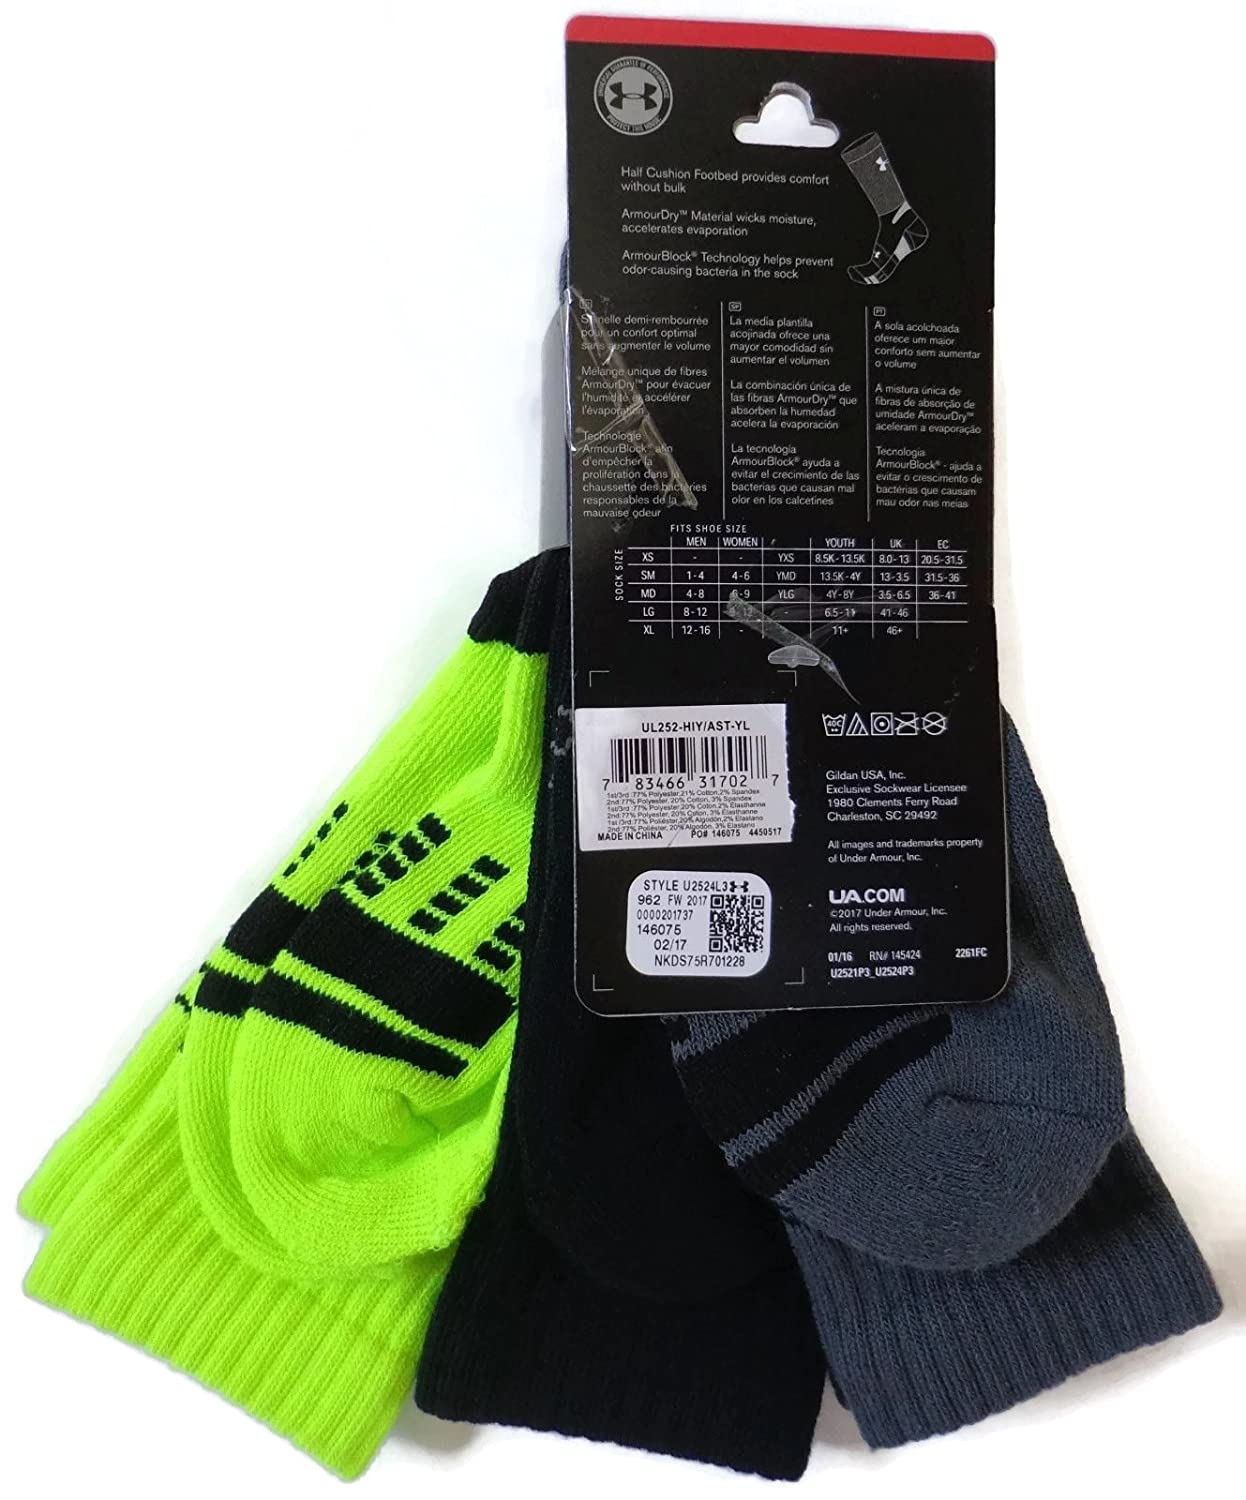 Amazon.com: Under Armour HeatGear Crew Socks 3-Pair Boys Youth Medium 4Y-8Y New: Clothing